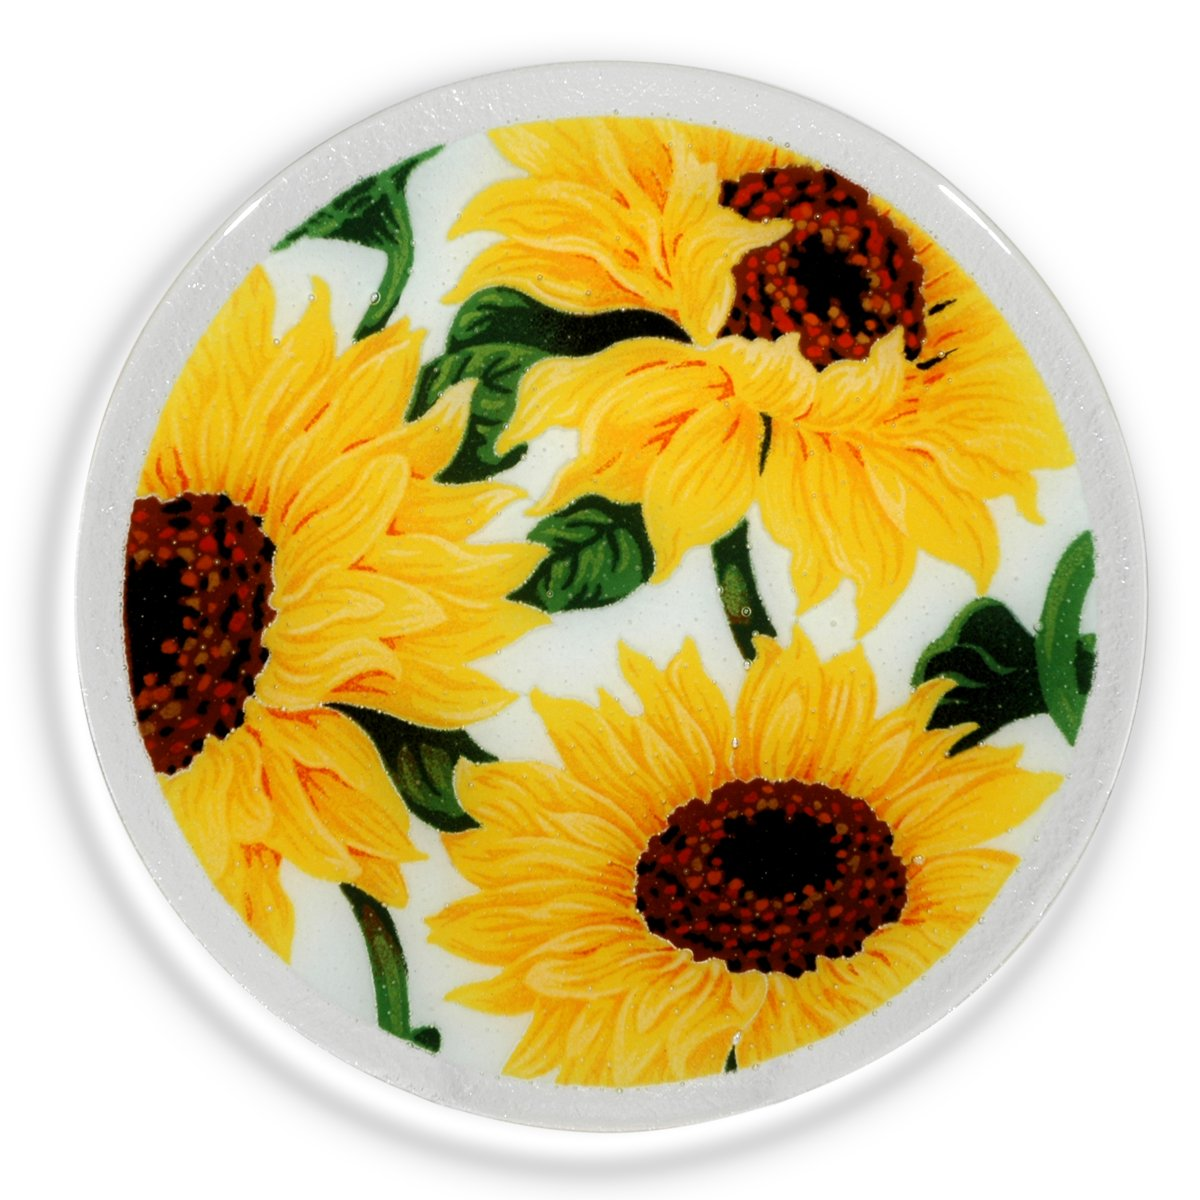 Peggy Karr Glass Handcrafted Art Glass Sunflowers on White 11'' Round Plate, Multicolor Floral Design by Peggy Karr